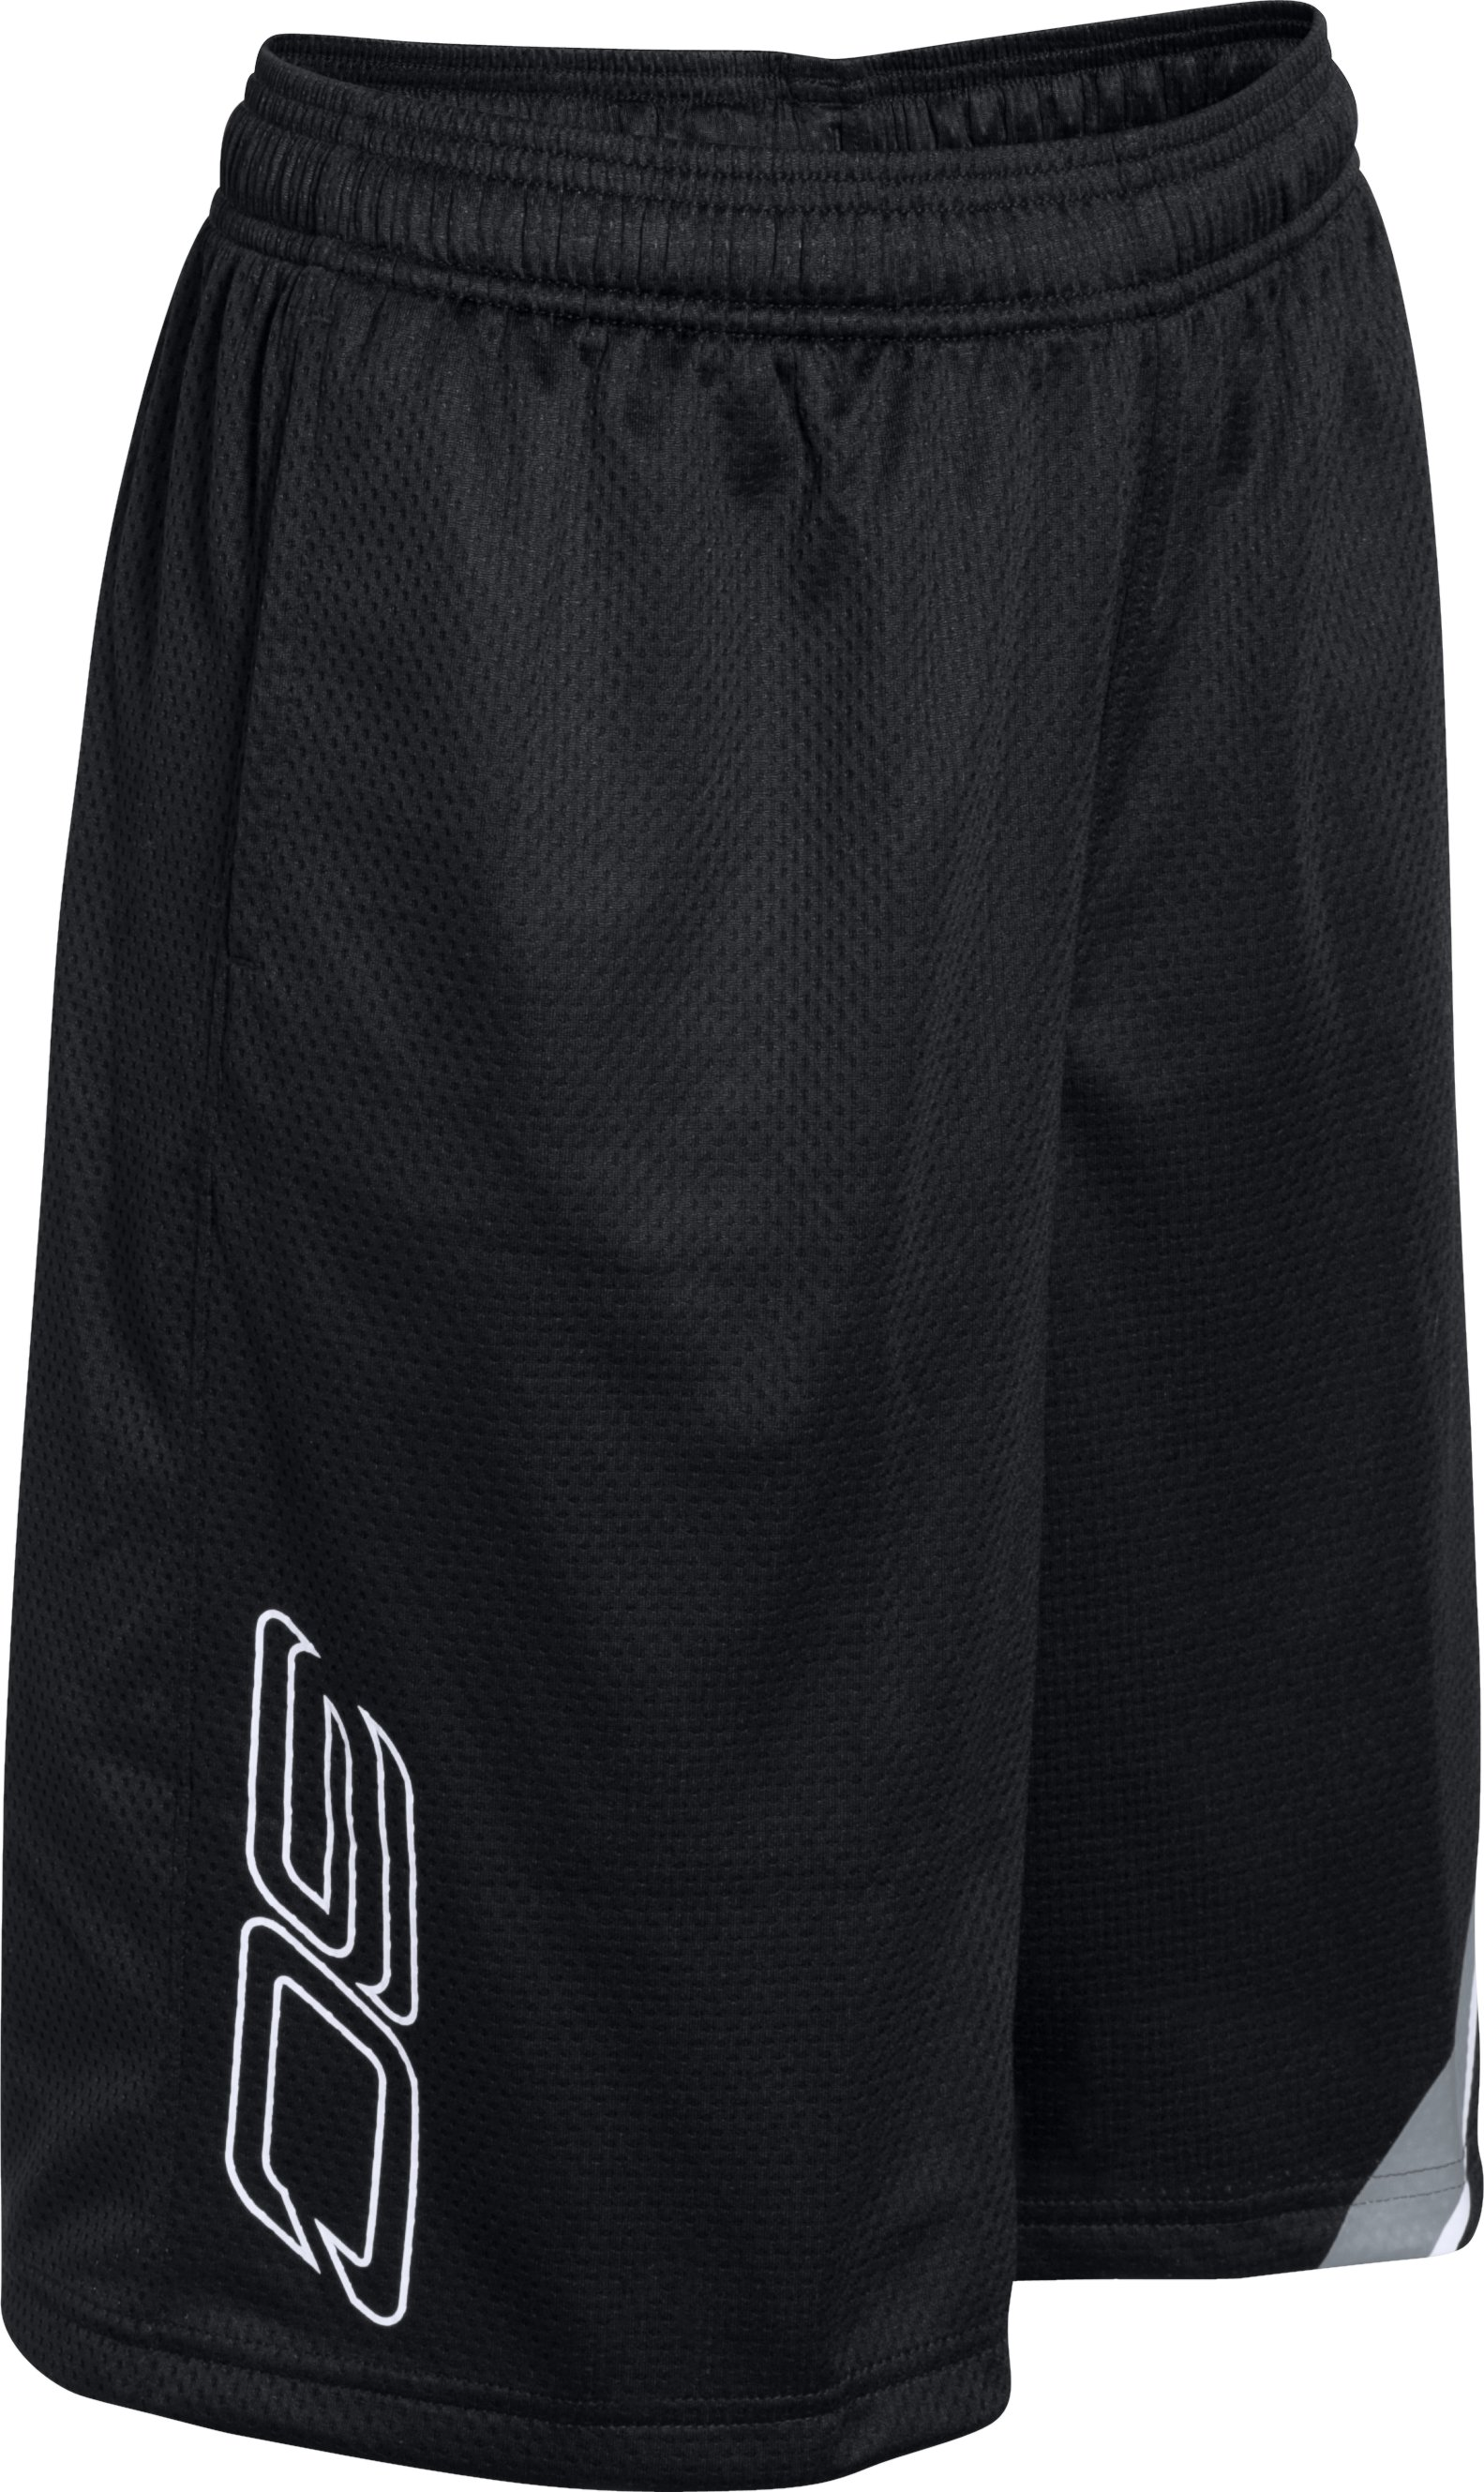 Boys' SC30 Essentials Basketball Shorts, Black